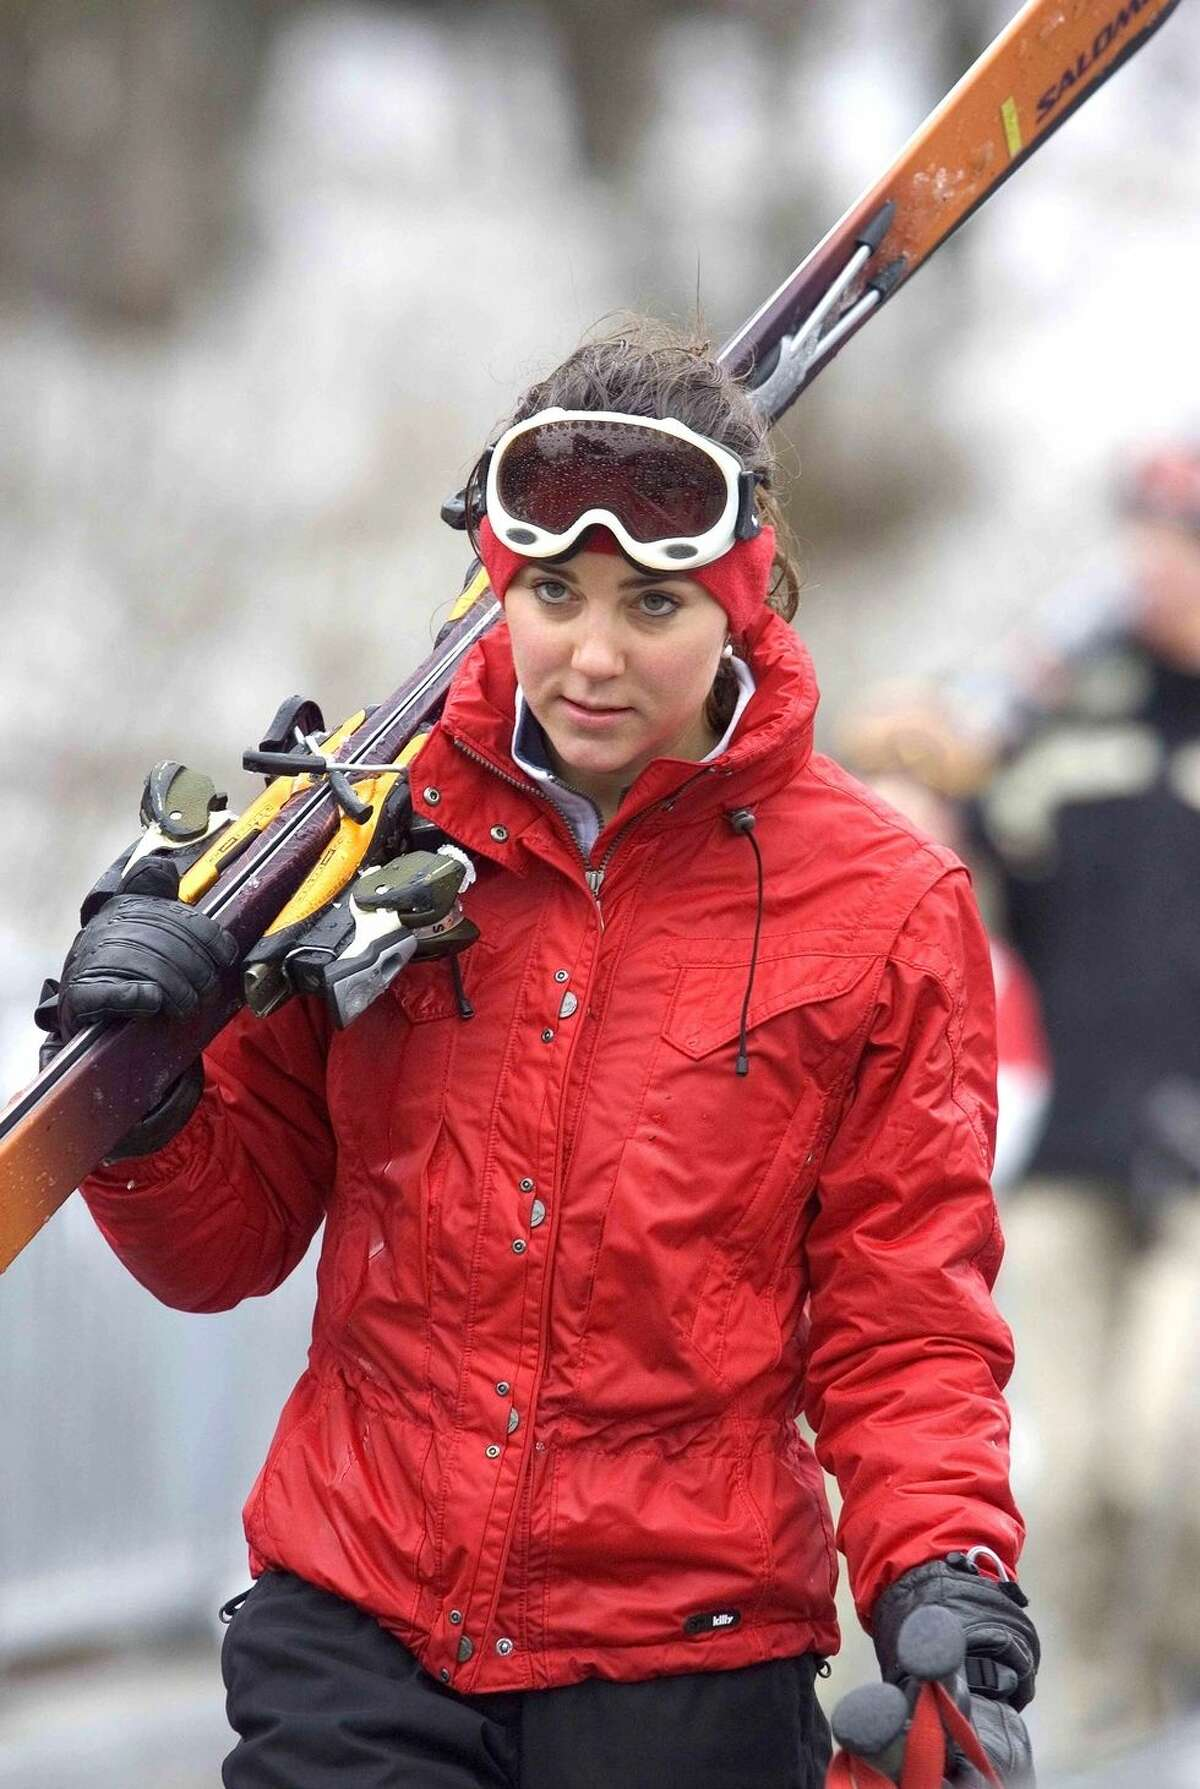 Kate Middleton On a ski trip in Switzerland in 2005.